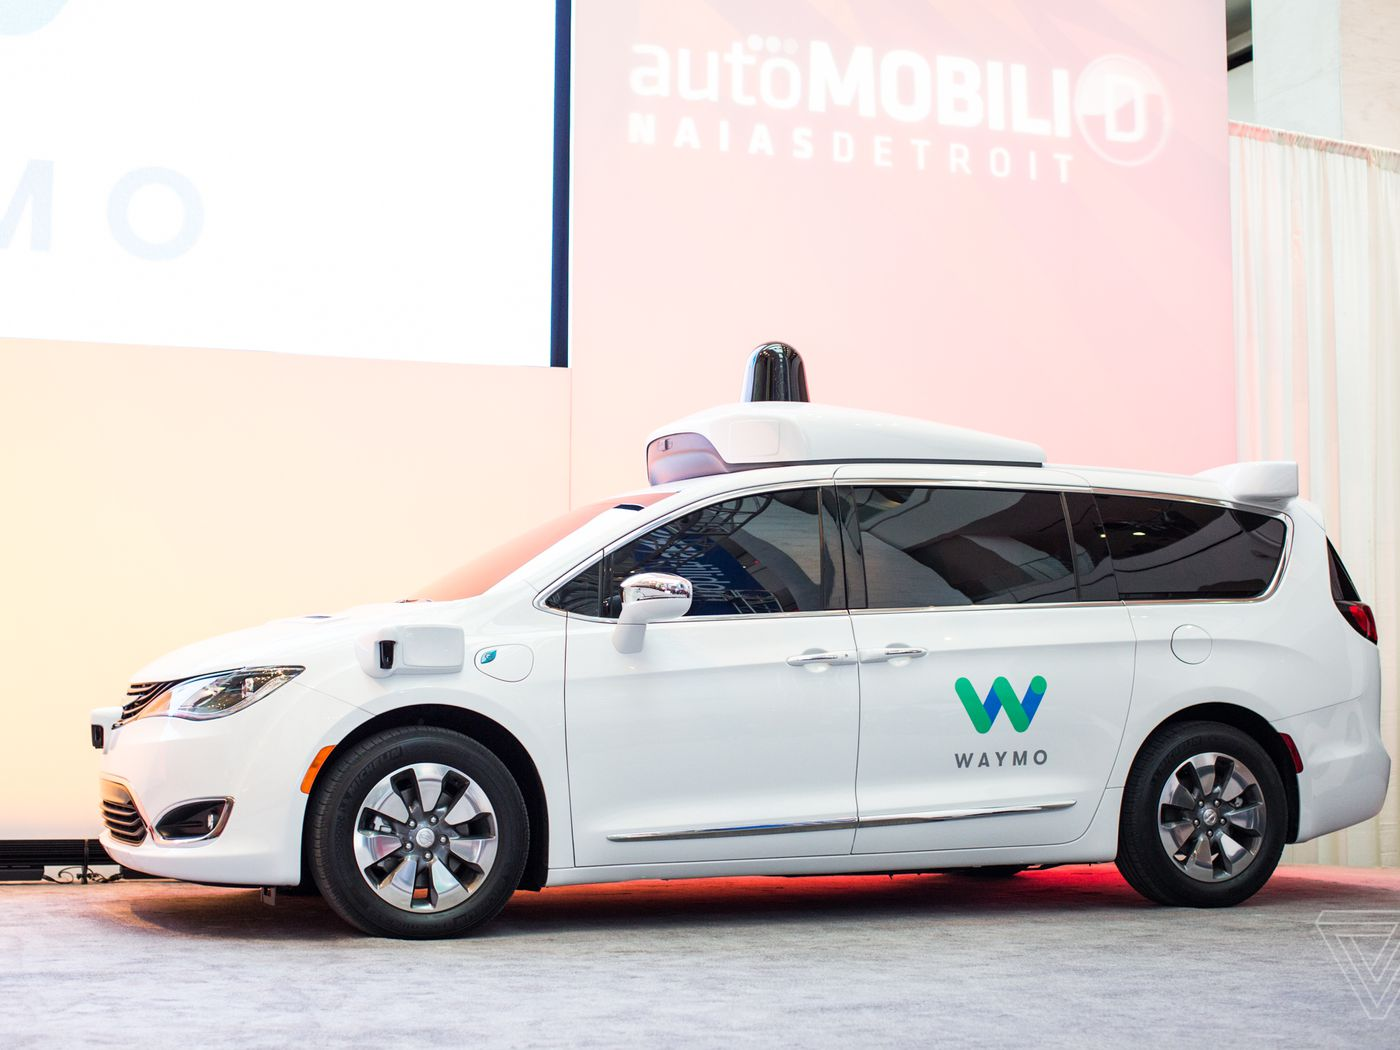 Waymo's fleet of self-driving minivans is about to get 100 times